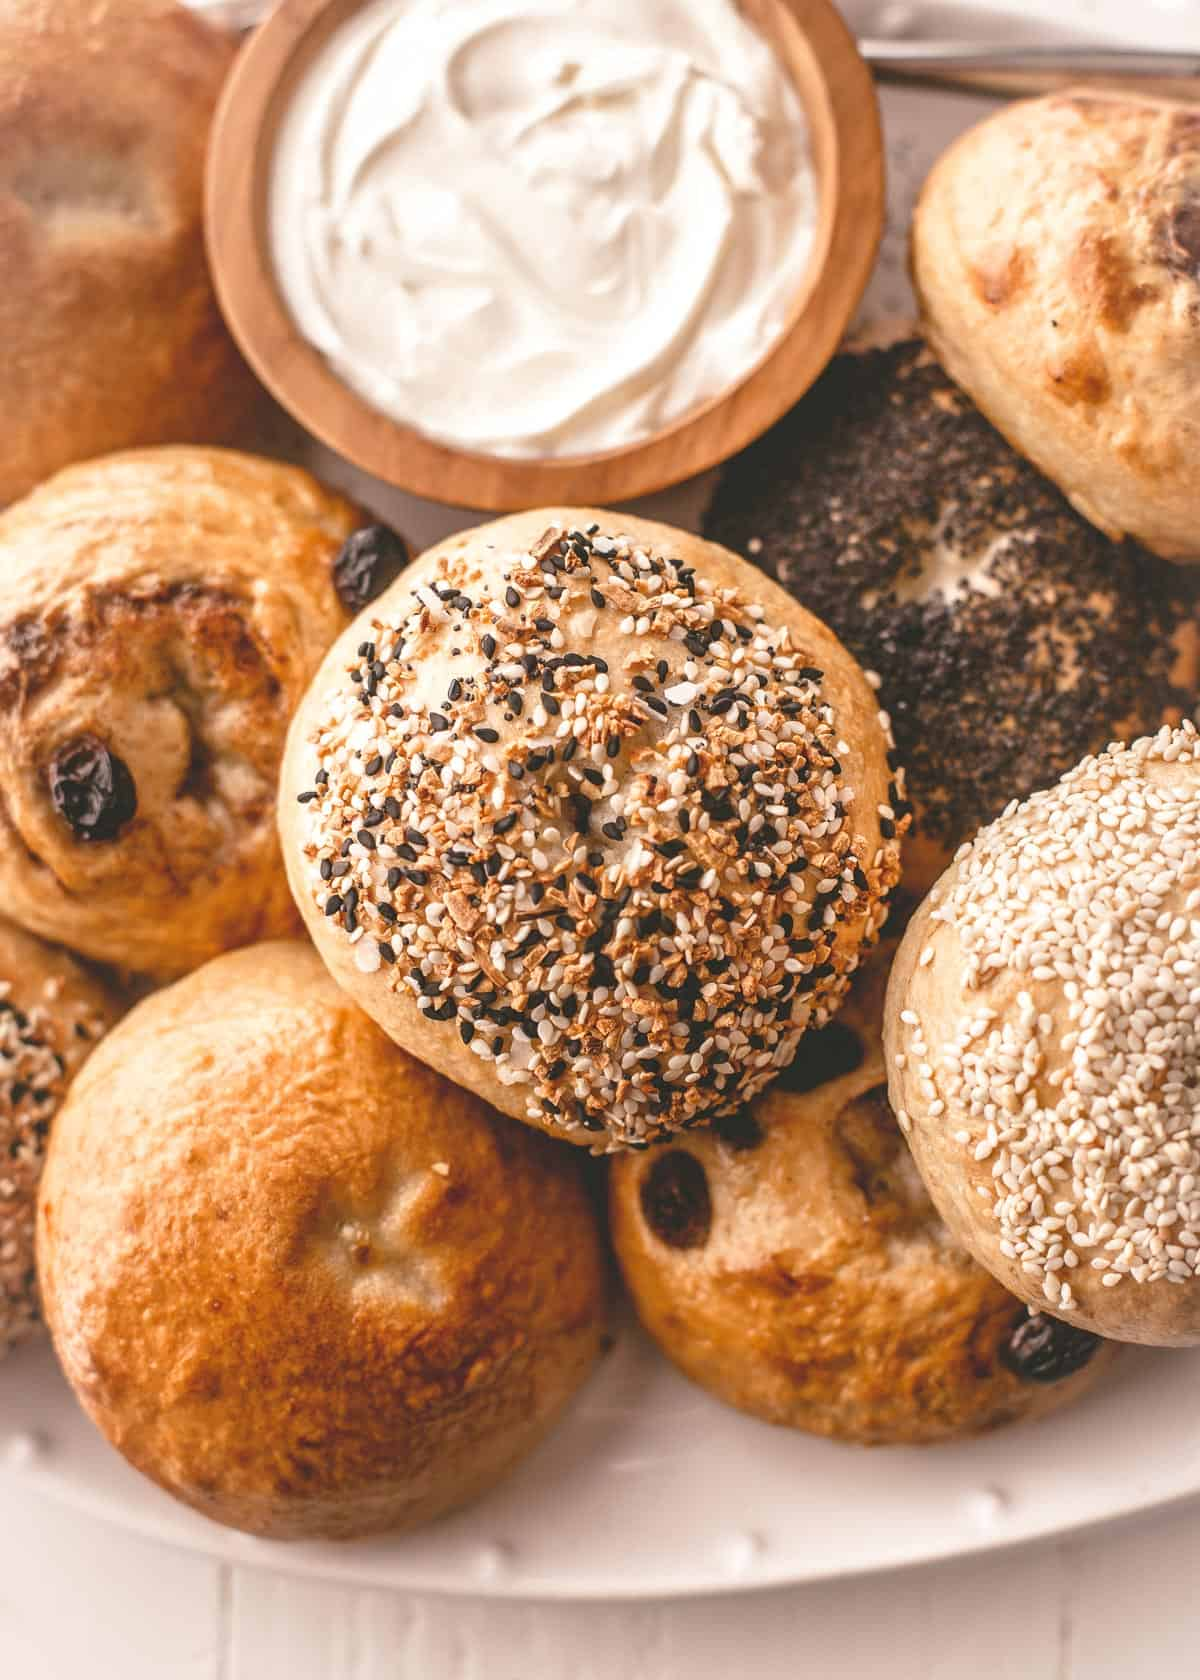 homemade bagels on a wooden board with cream cheese